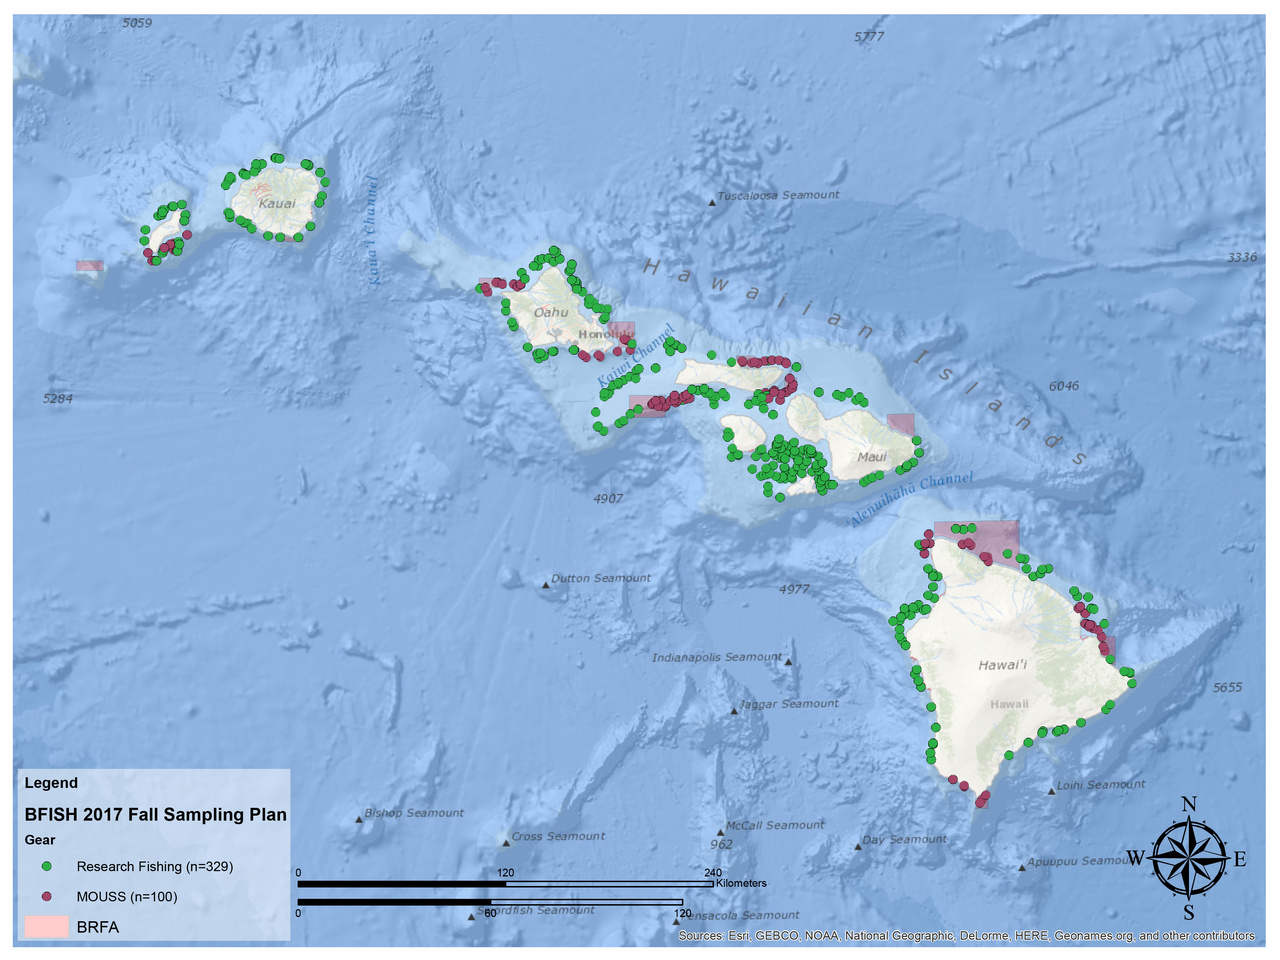 Map of sampling locations planned for the 2017 bottomfish survey.